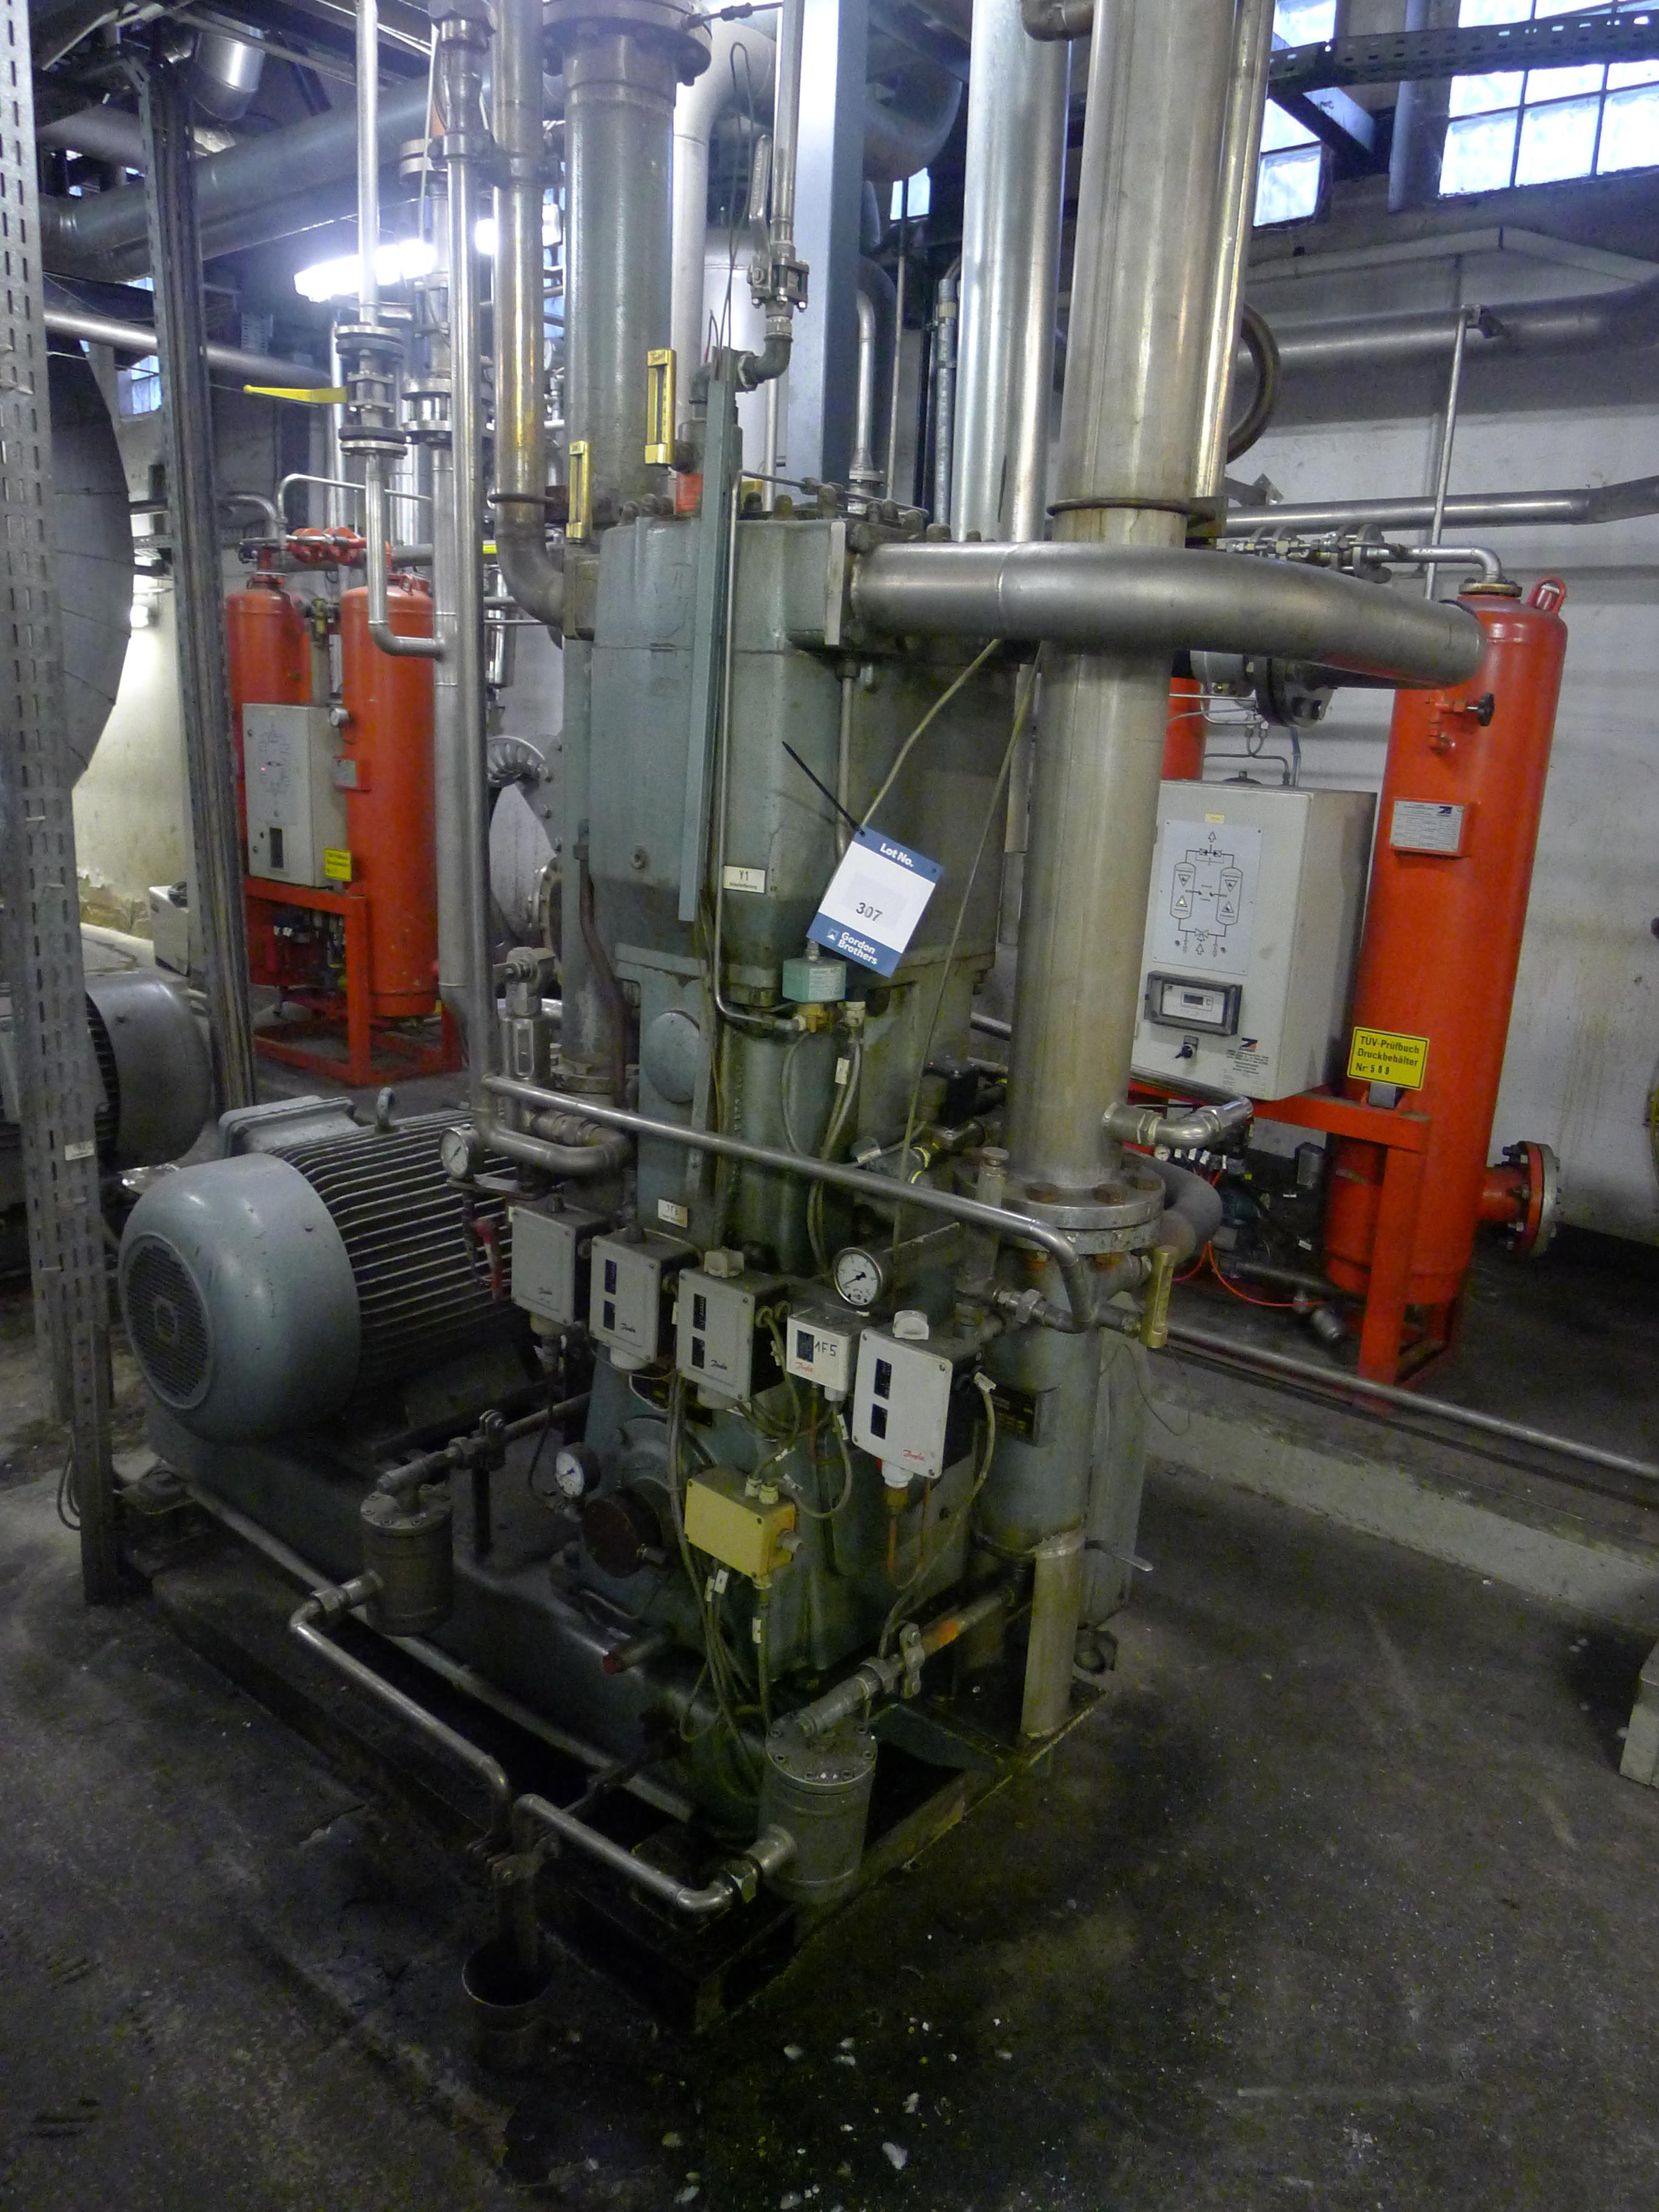 Lot 307 - Josef Mehrer Type TZW-60 Two Stage Water Cooled Compressor S/N 60 (Dismantling and Loading Fee: €